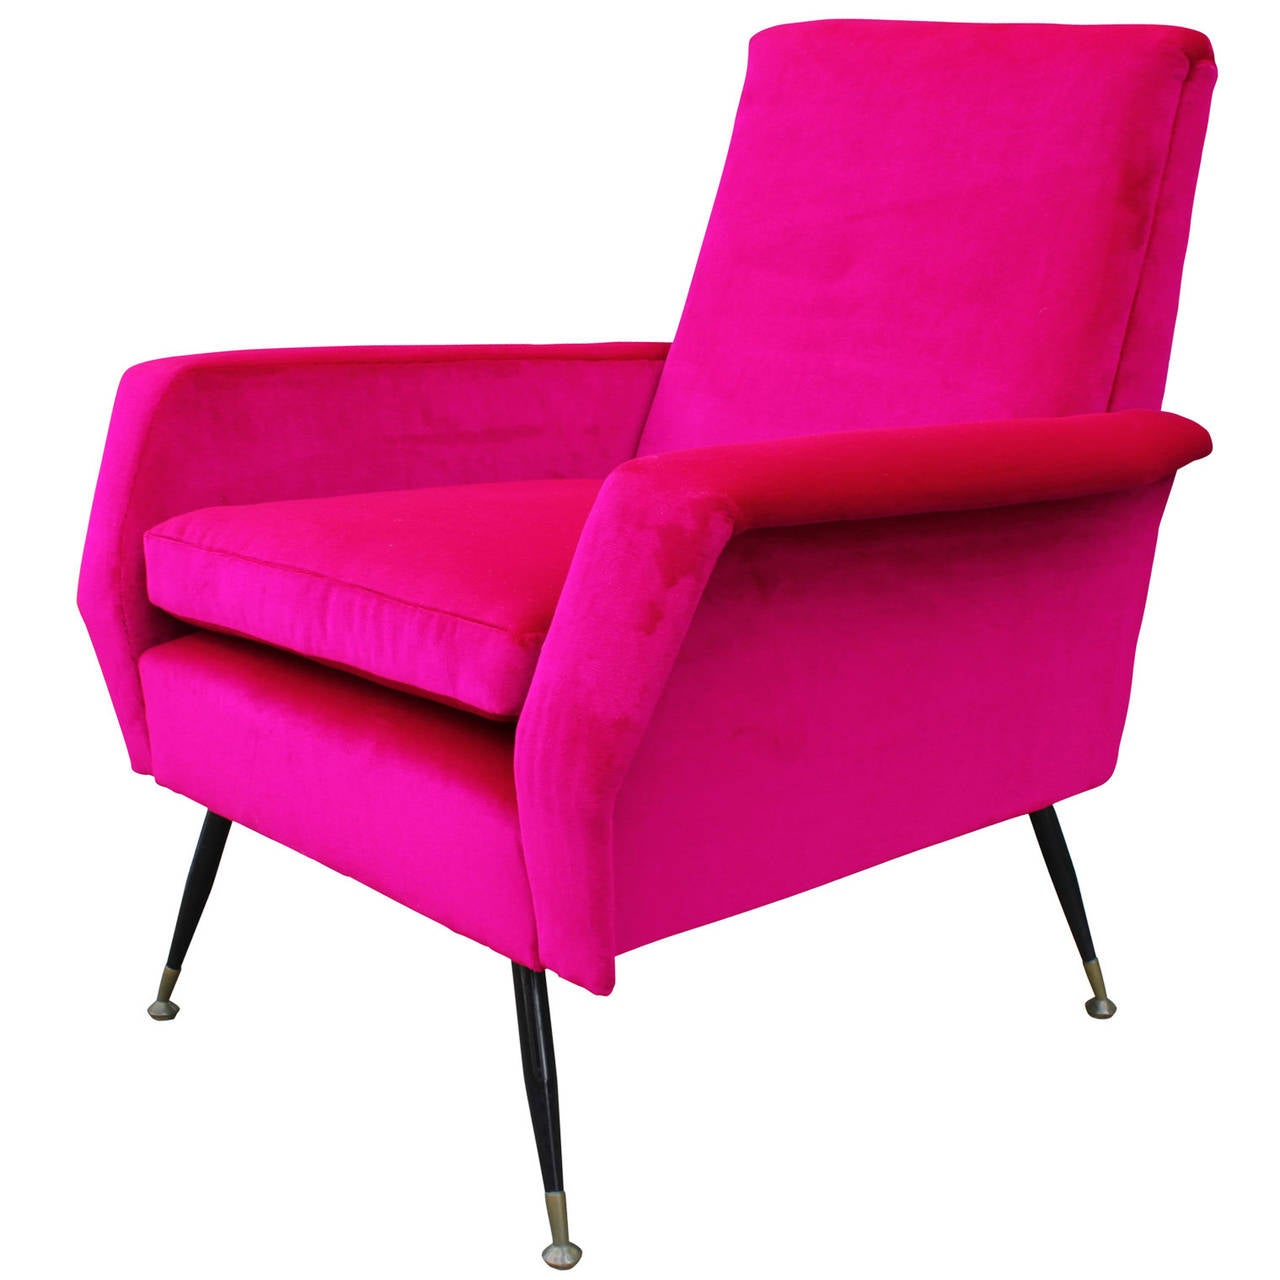 pink club chair dining room captain chairs incredible bold velvet italian lounge at 1stdibs